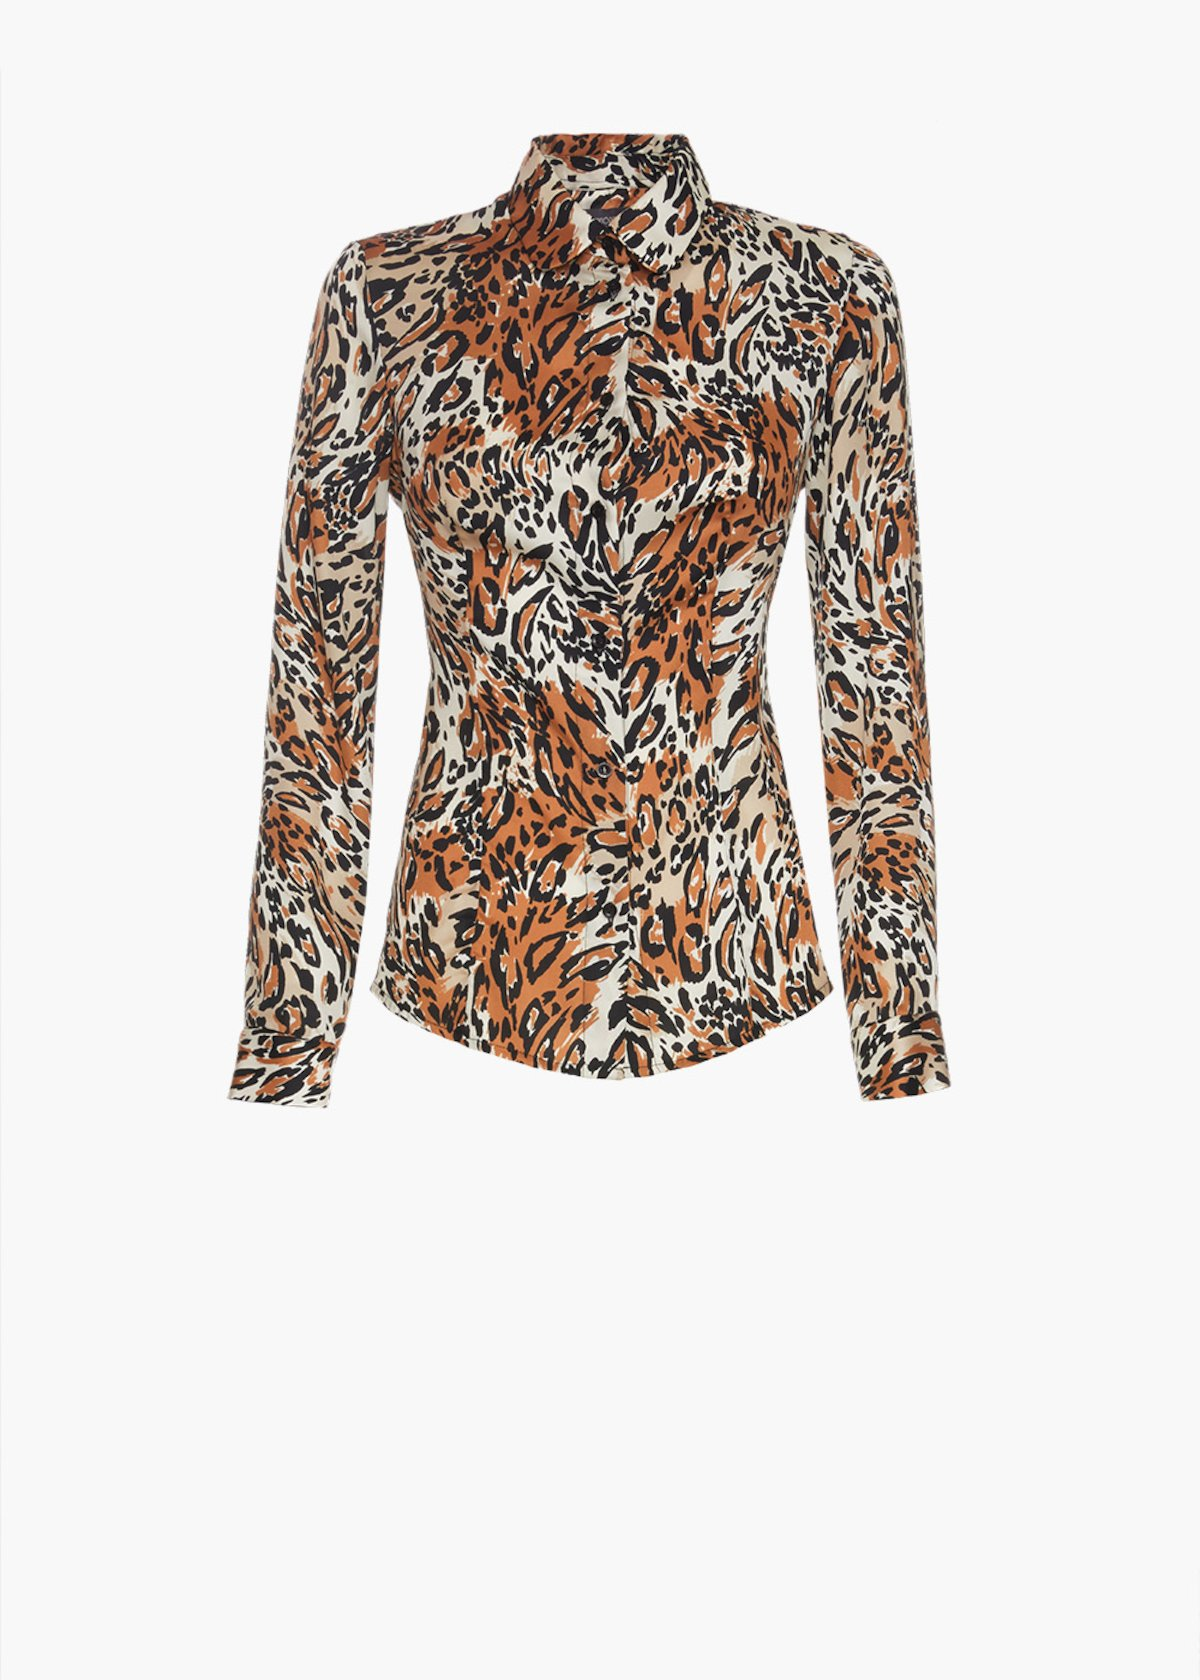 Blouse Cindy with animalier print - Beige Animalier - Woman - Category image